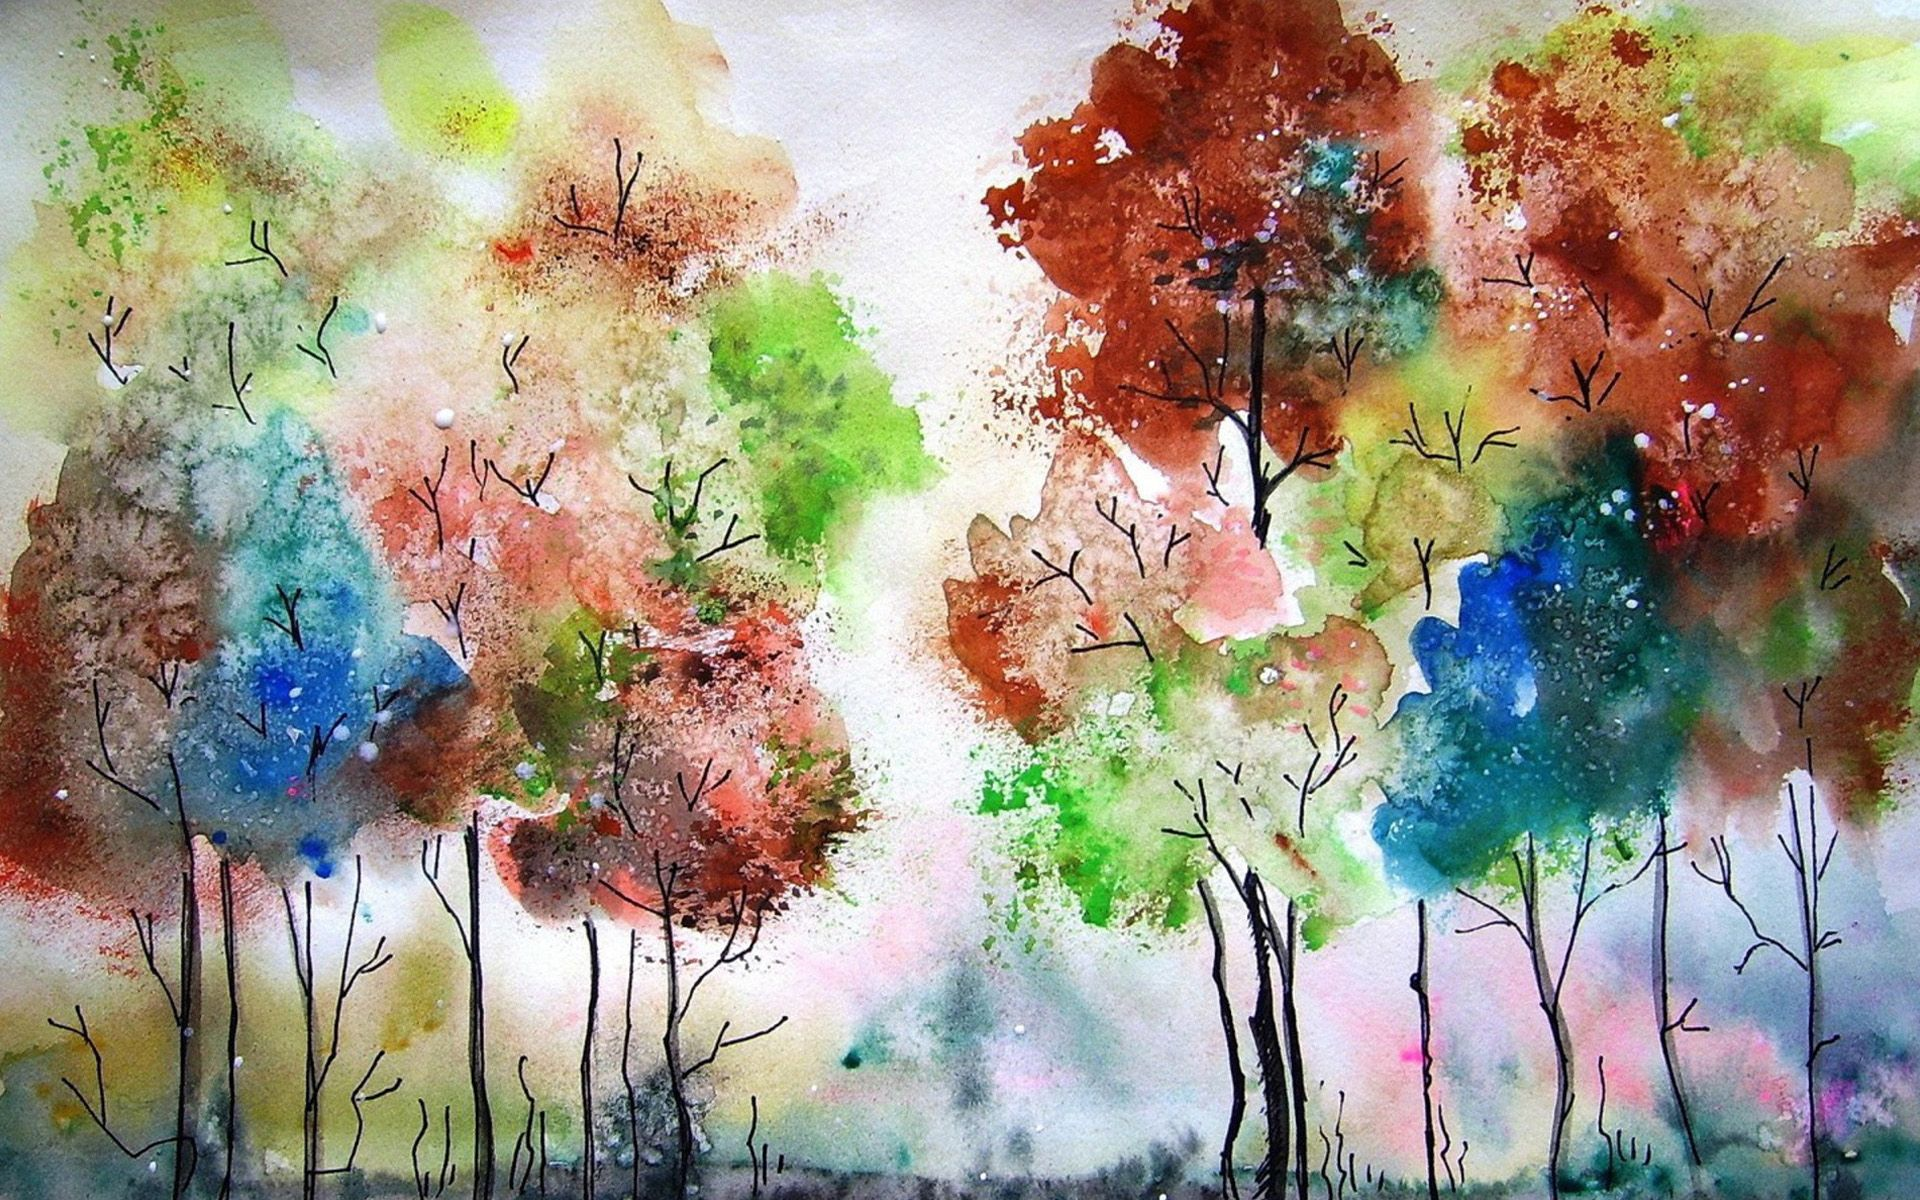 Watercolor Wallpaper Hd Papel Tapiz De Acuarela Pinturas